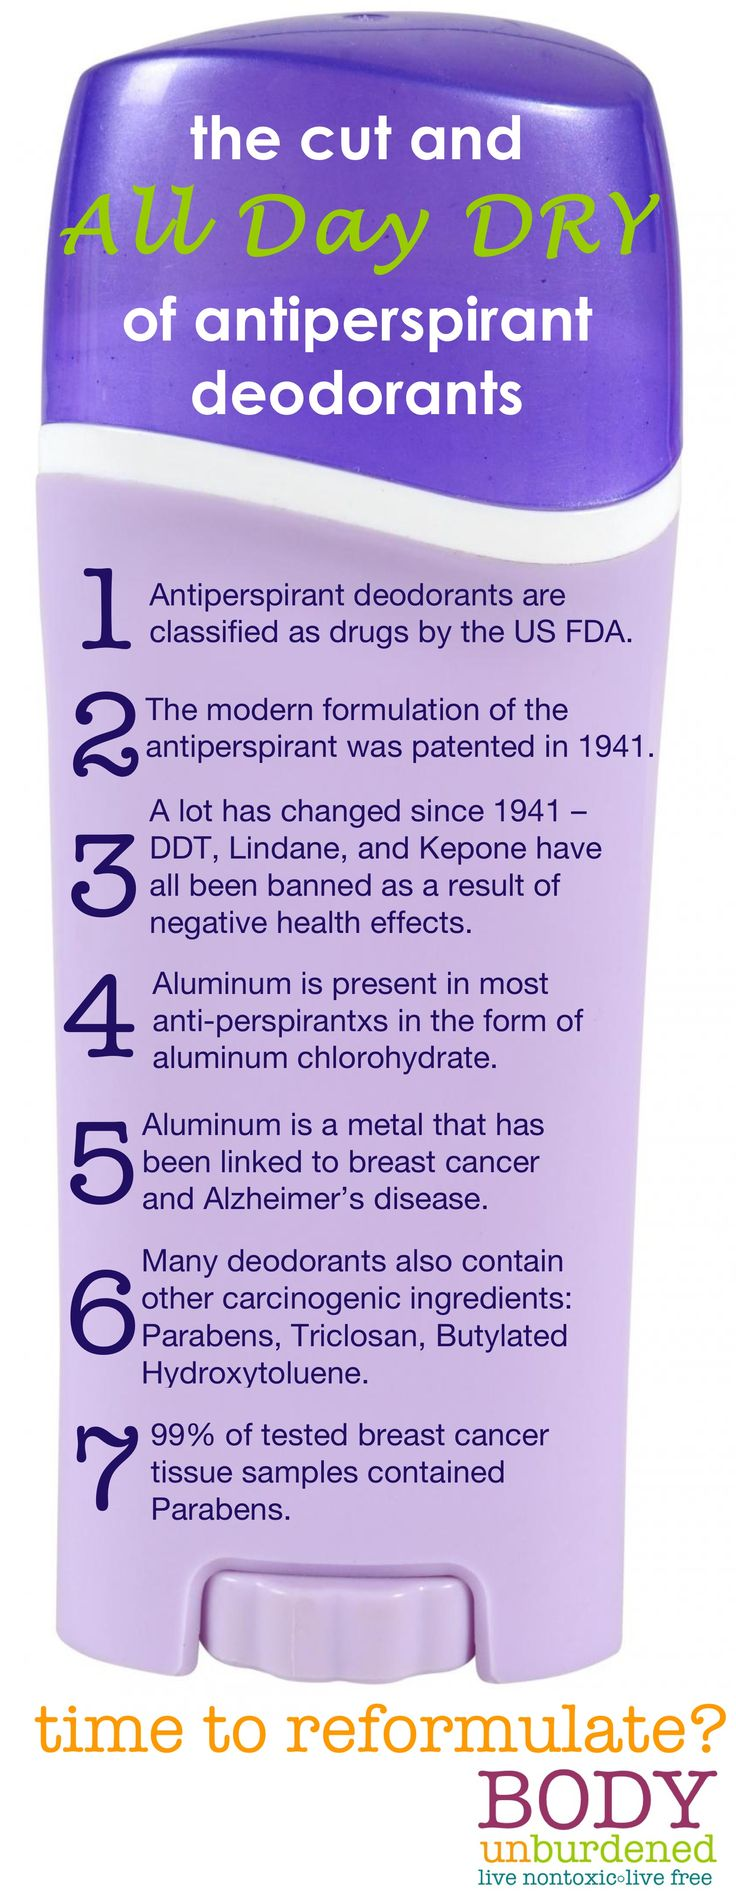 antiperspirants and cancer Cbs news investigative reporter sharyl attkisson follows up on a 2006 report about possible links between antiperspirants and breast cancer an interesting follow-up.